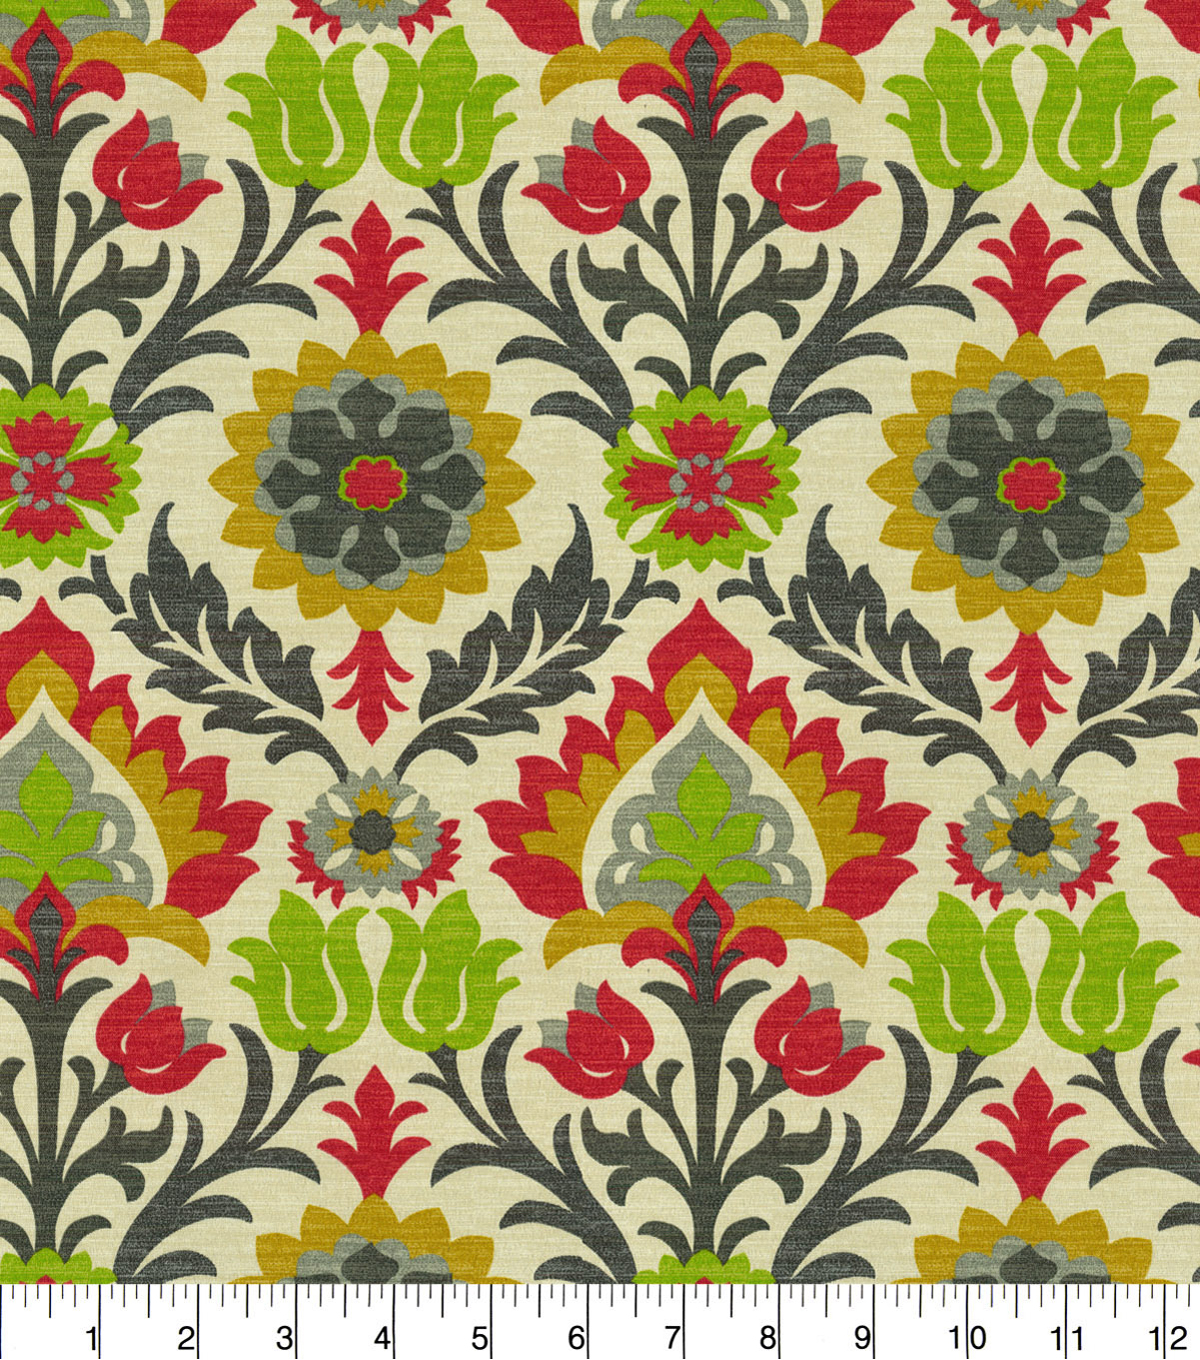 Waverly Sun N Shade Fabric 9\u0022x9\u0022 Swatch-Santa Maria Jewel